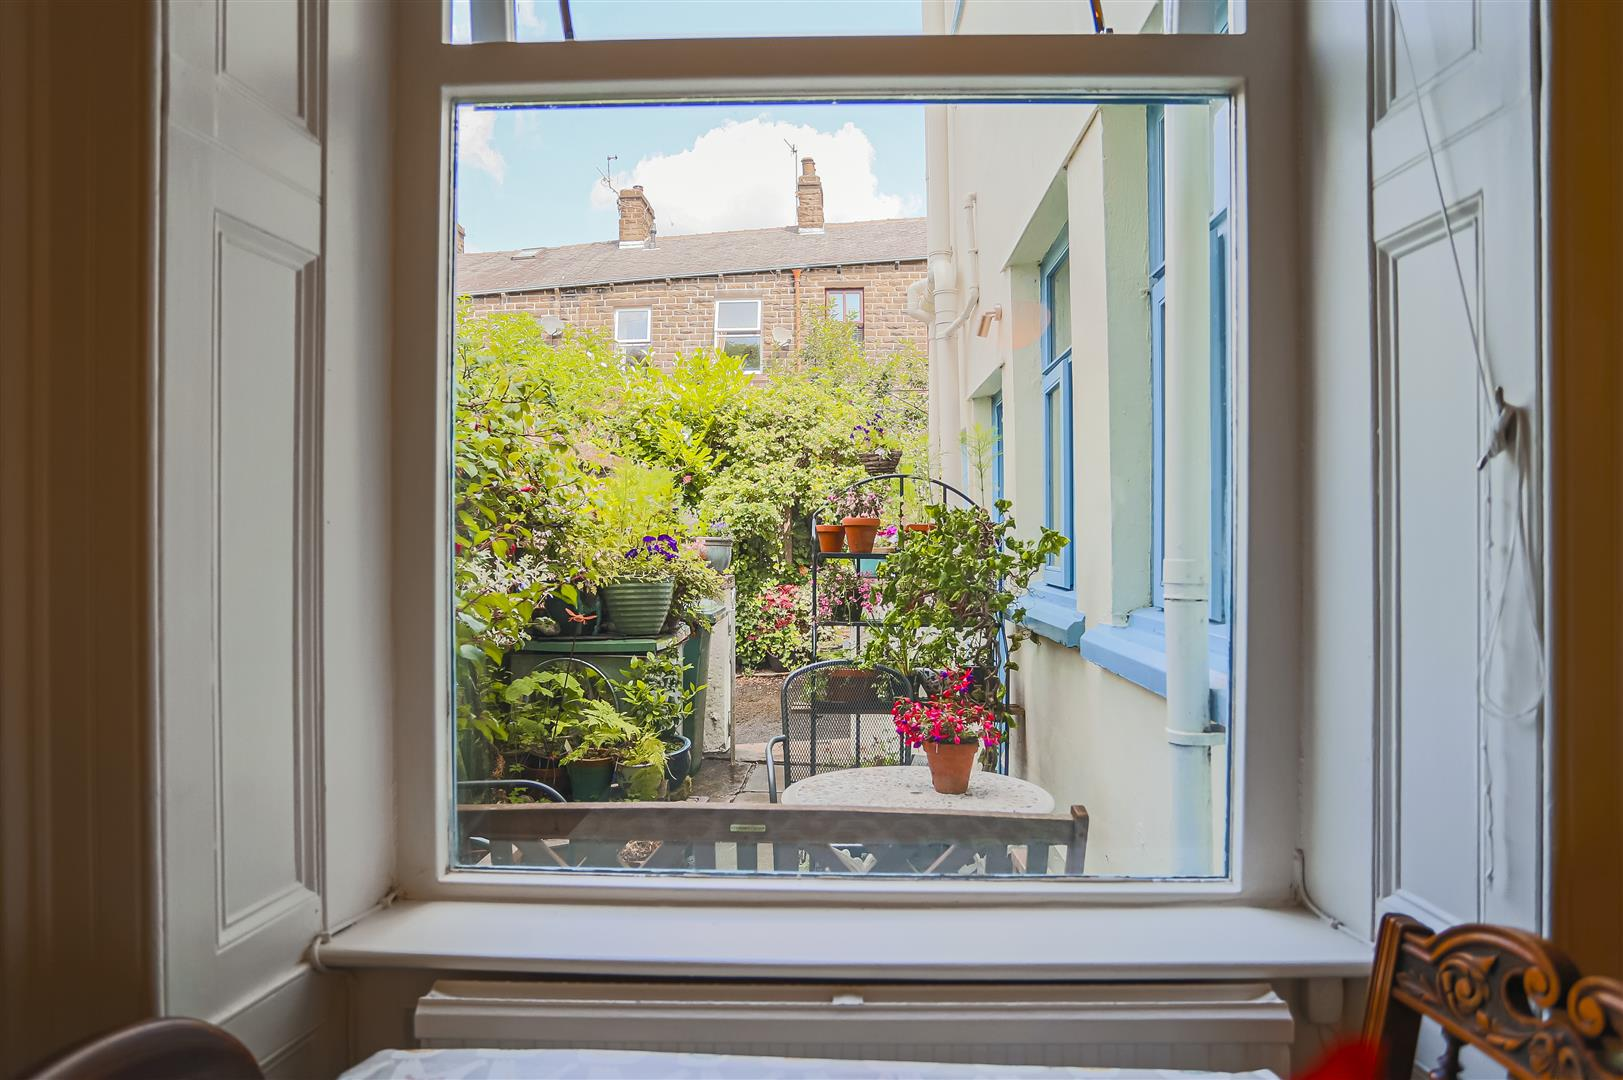 3 Bedroom Terraced House For Sale - Image 17